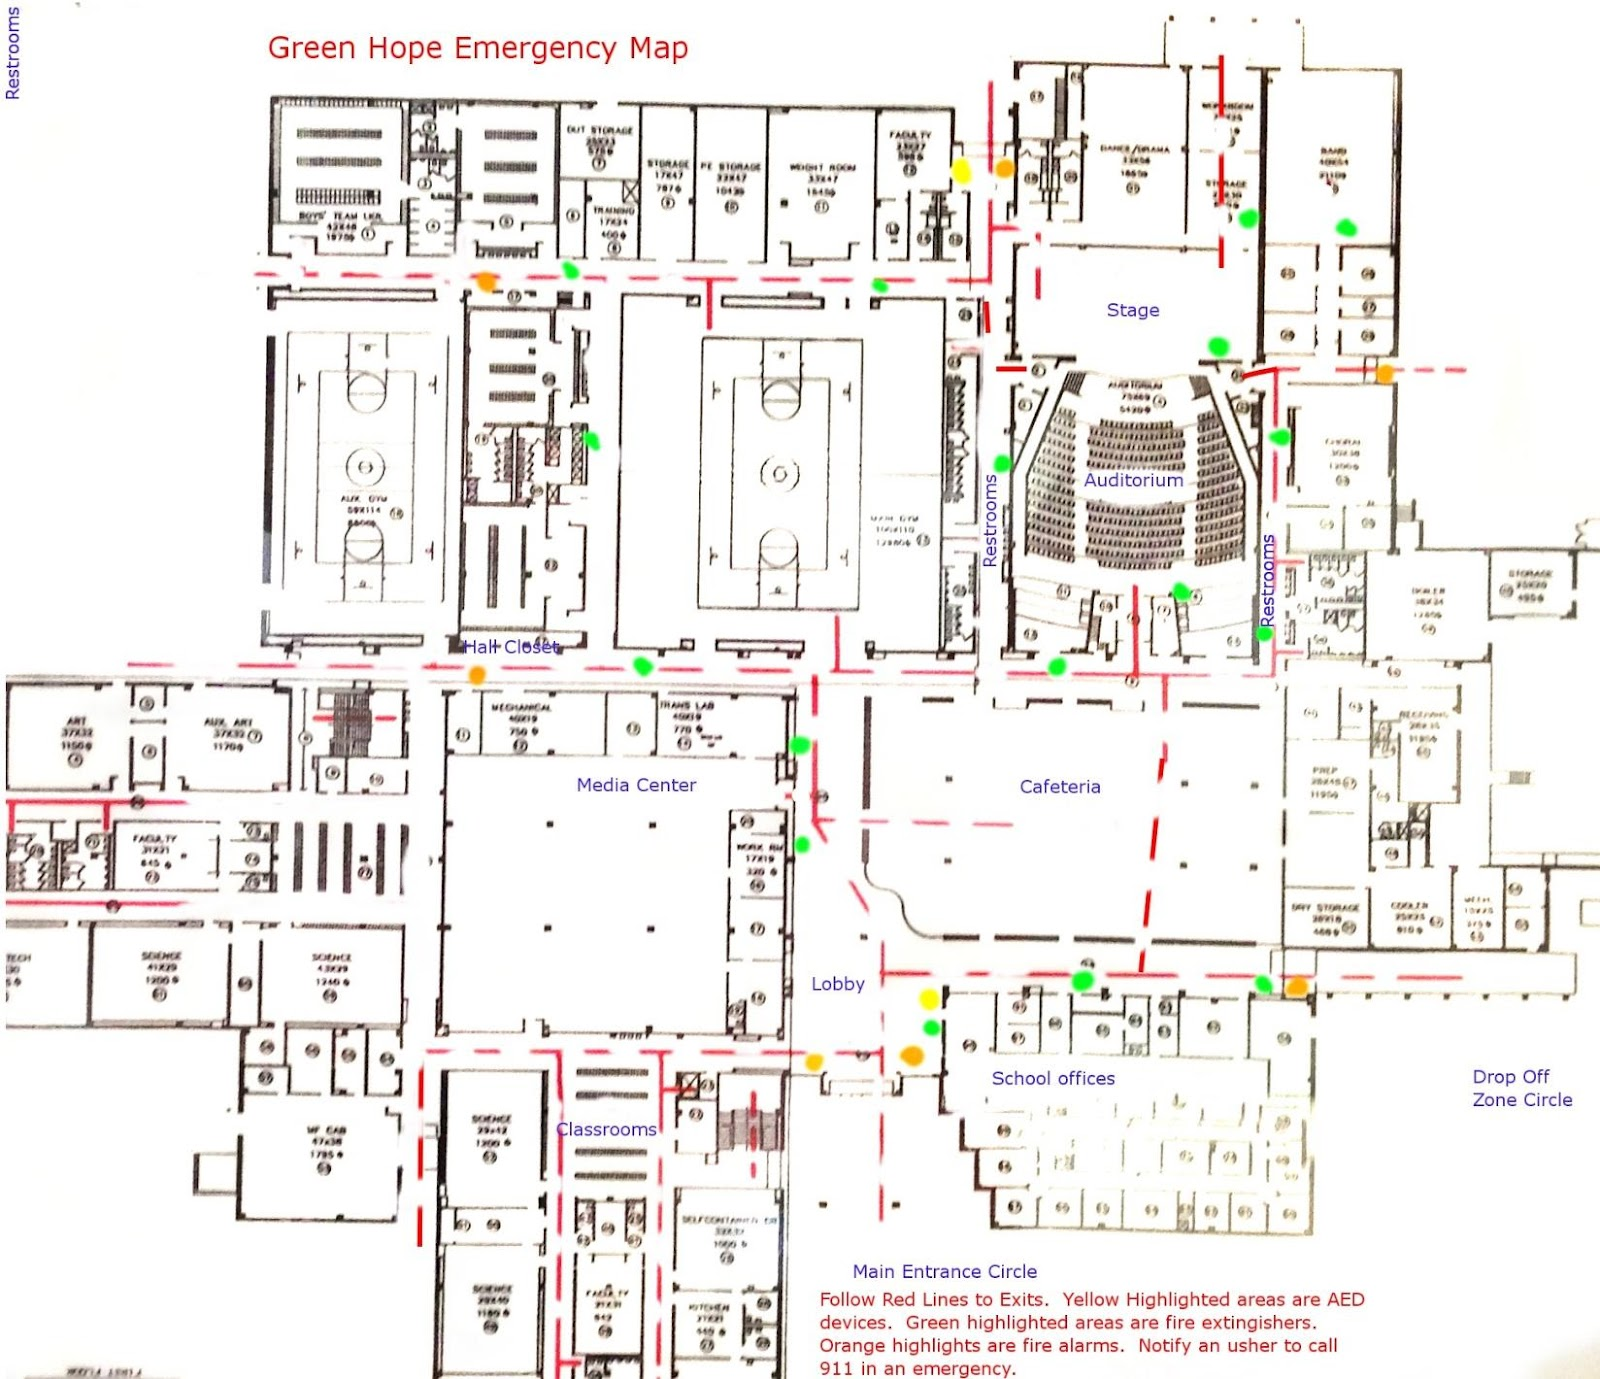 C:\StMikes\GreenHope\MinisterGuidelines_2014\2010111_Version\GH Map - Final.jpg